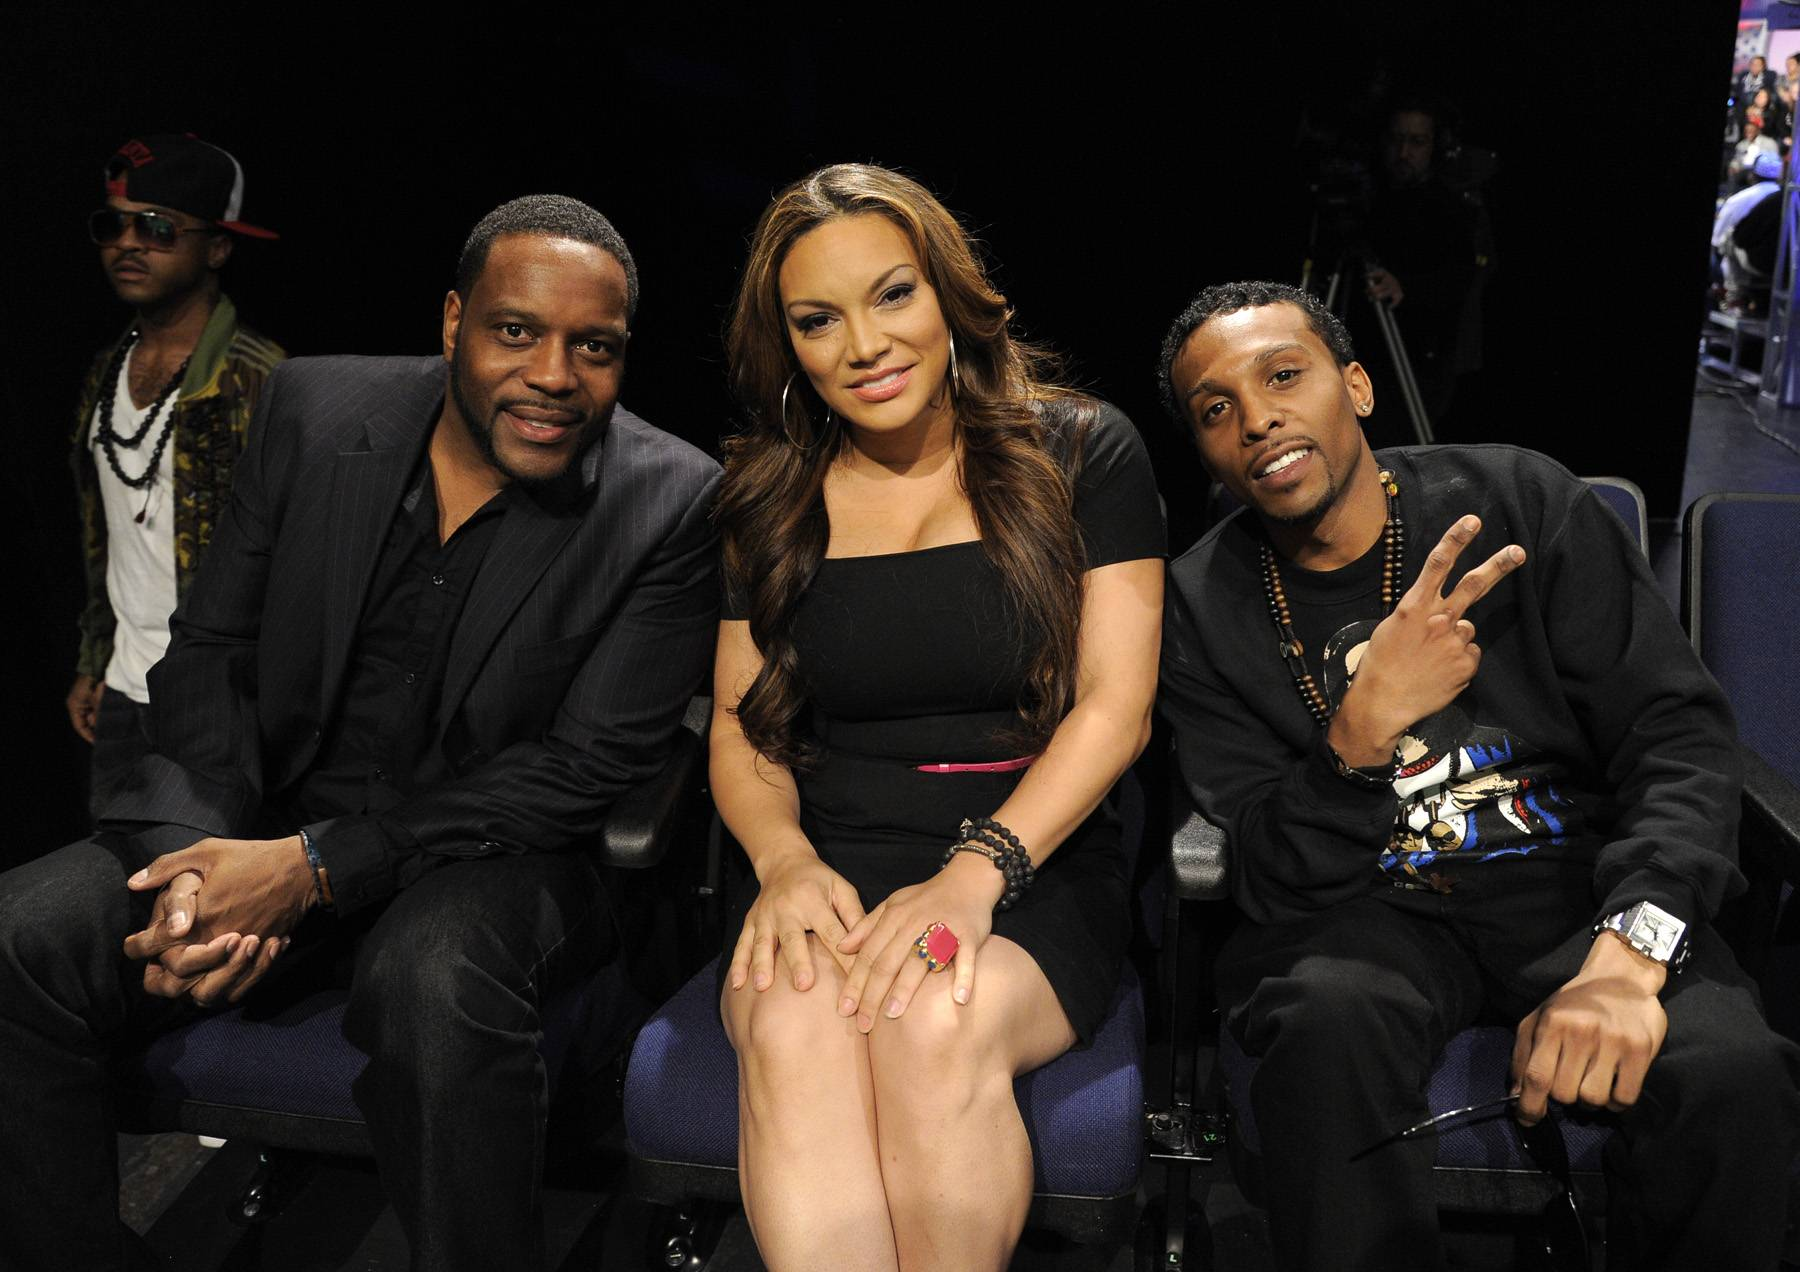 Enjoying the Moment - Chad Coleman, Egypt Sherrod and Robbie Tate Brickle backstage at 106 & Park, April 12, 2012. (Photo: John Ricard / BET)